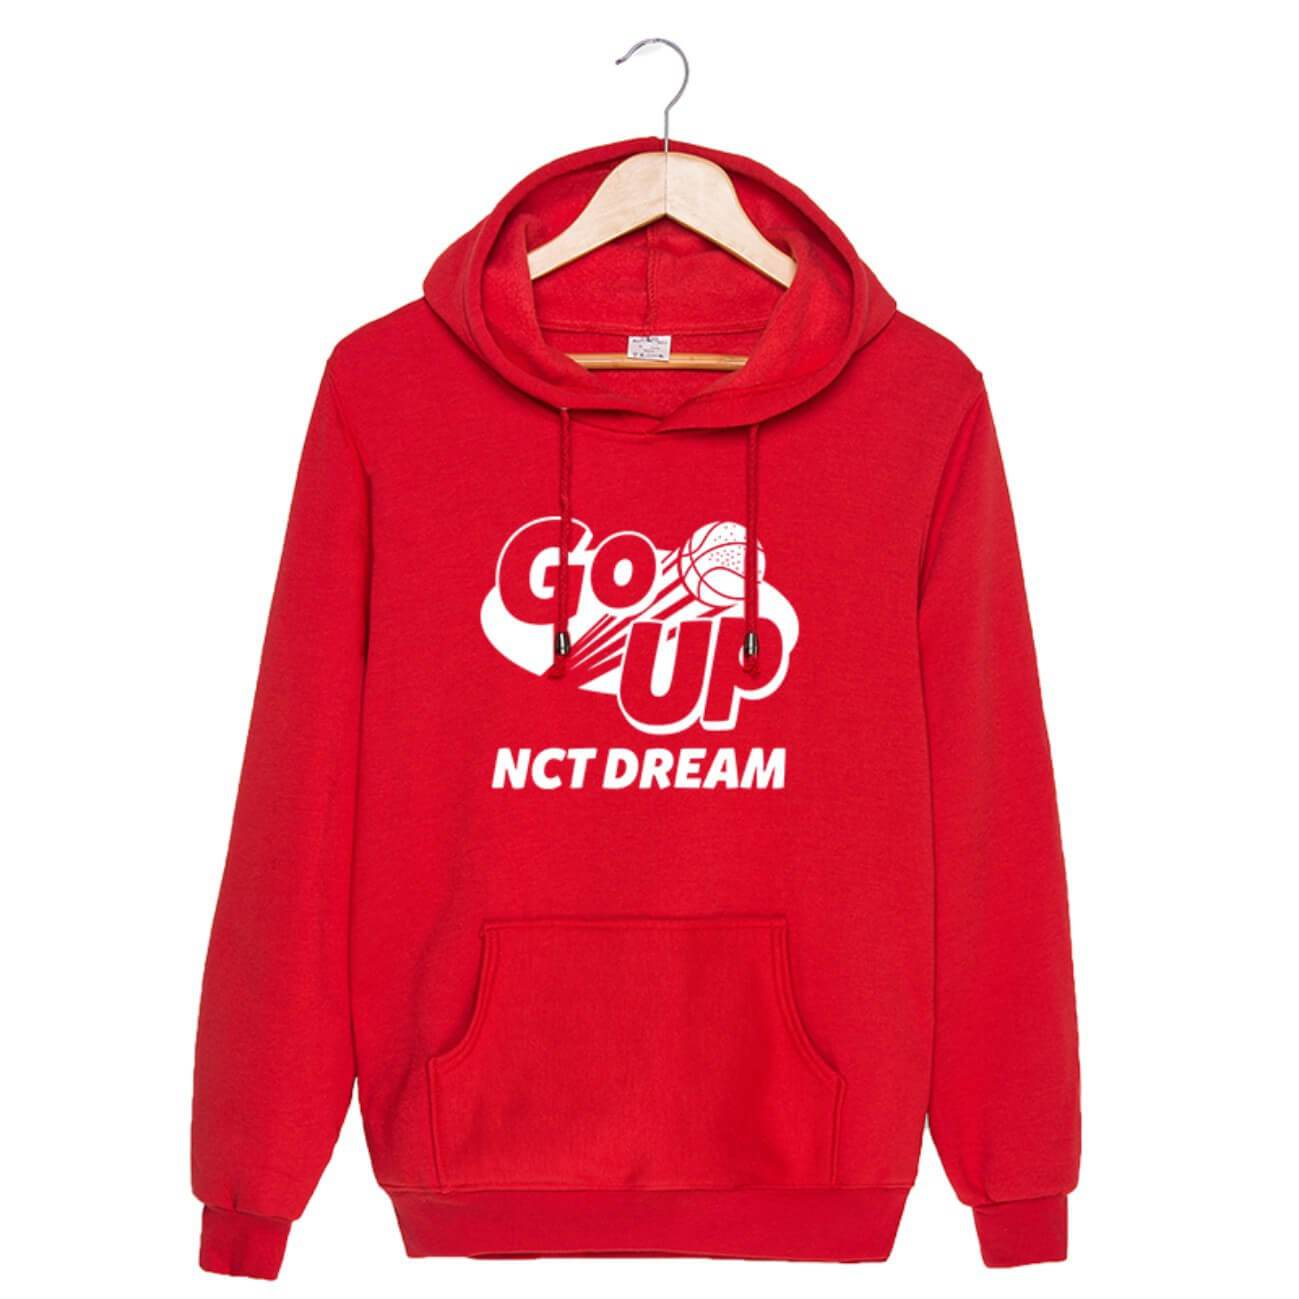 NCT DREAM Album We Go Up Printed Cotton Hoodie